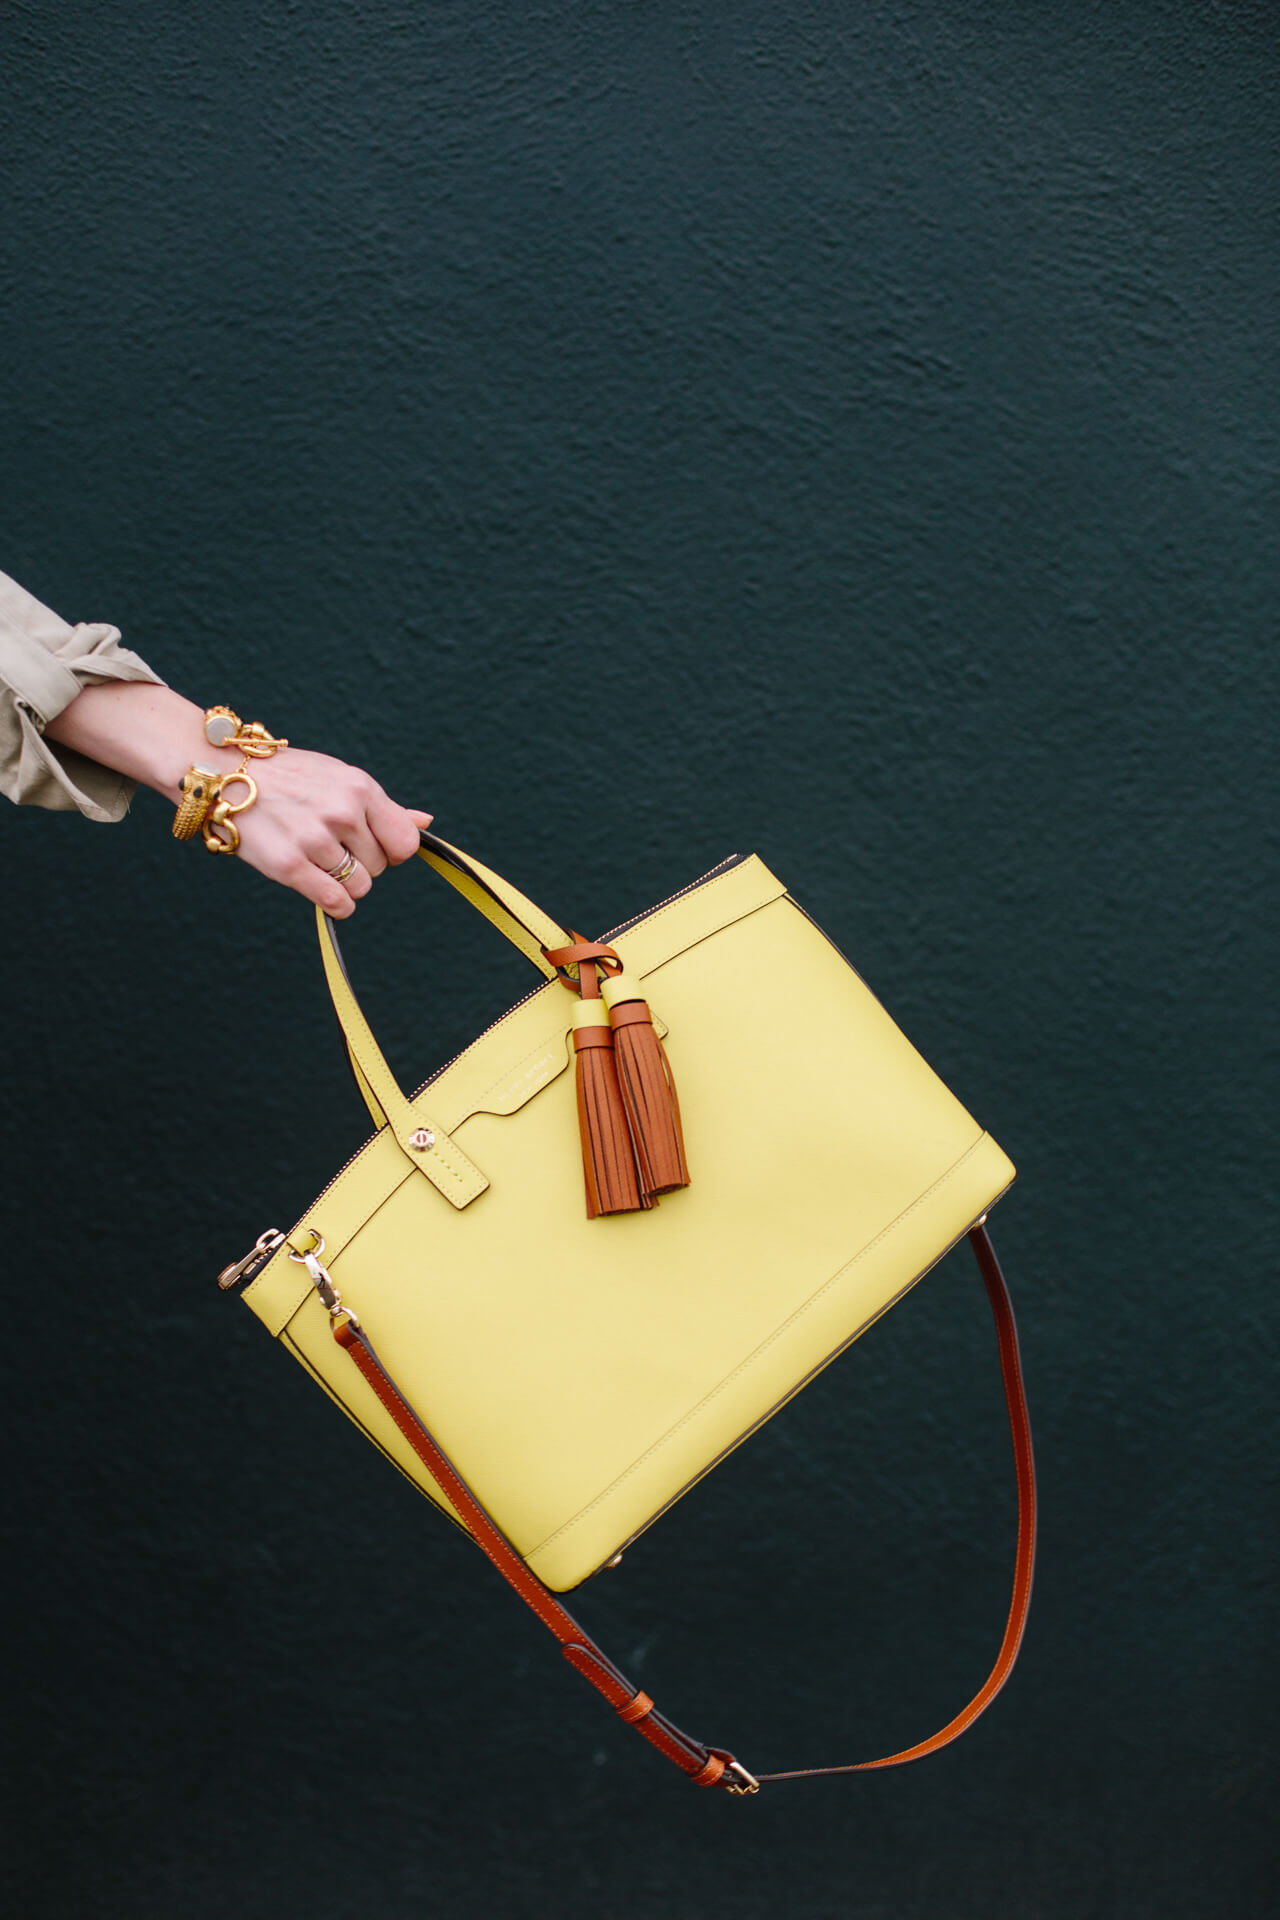 yellow bag with tassels